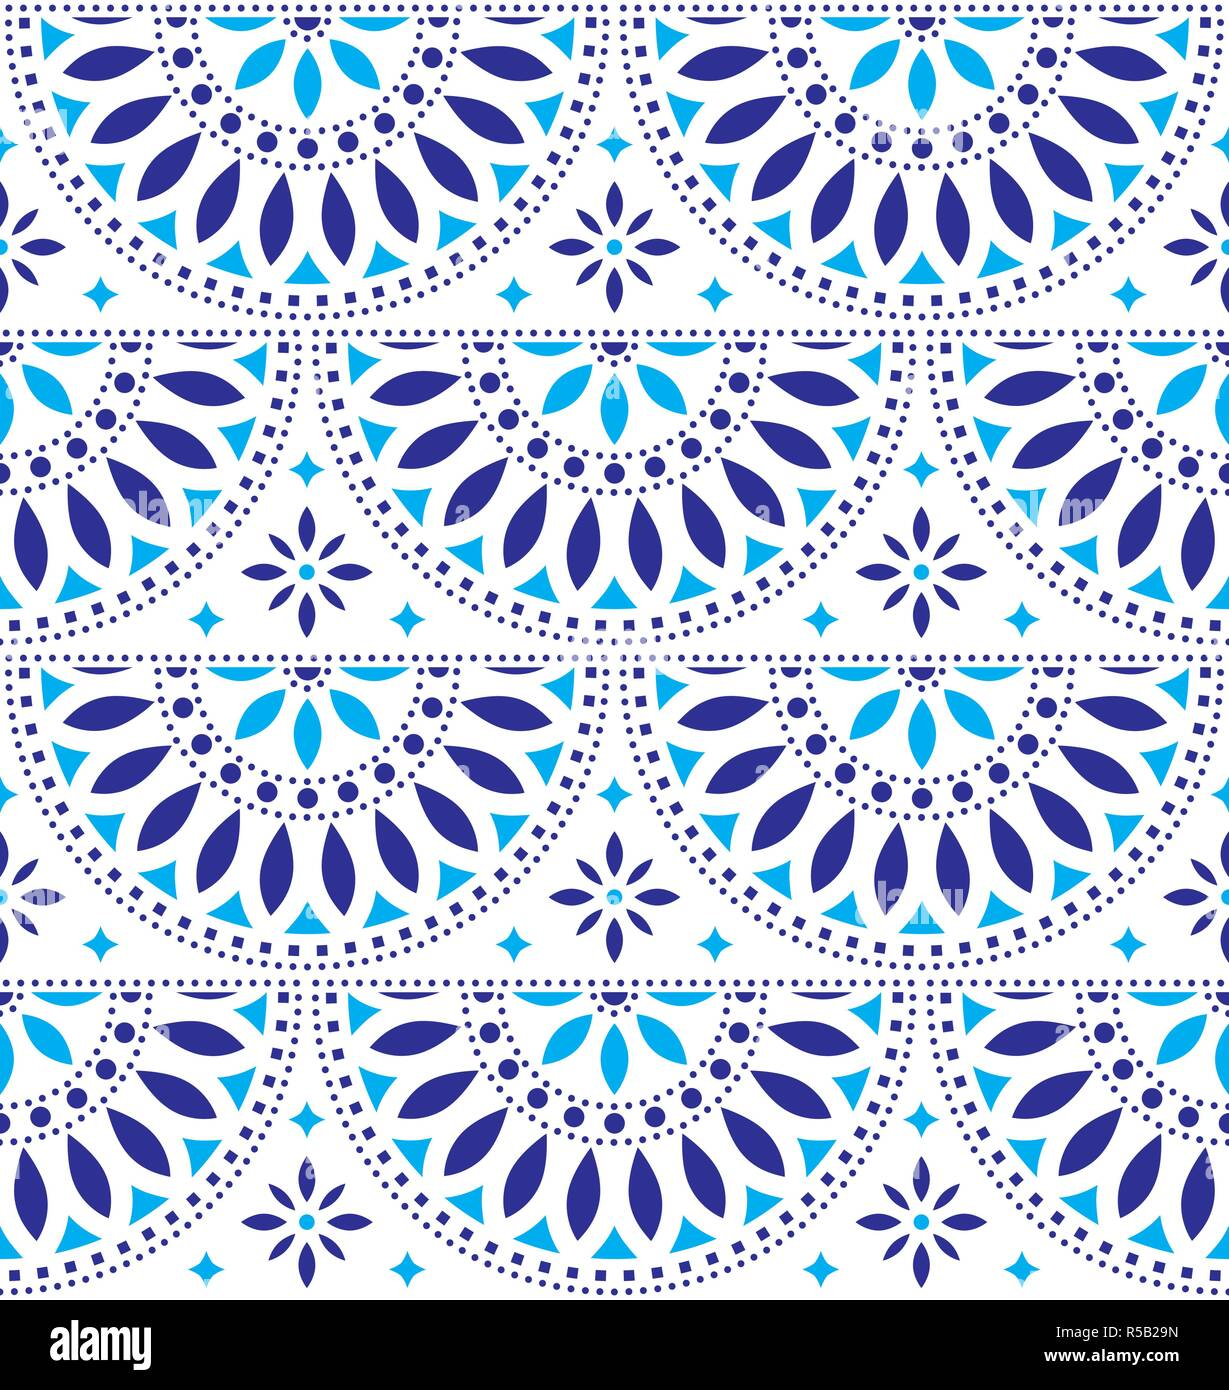 Mexican folk art vector seamless geometric pattern with flowers, blue fiesta design inspired by traditional art from Mexico - Stock Vector